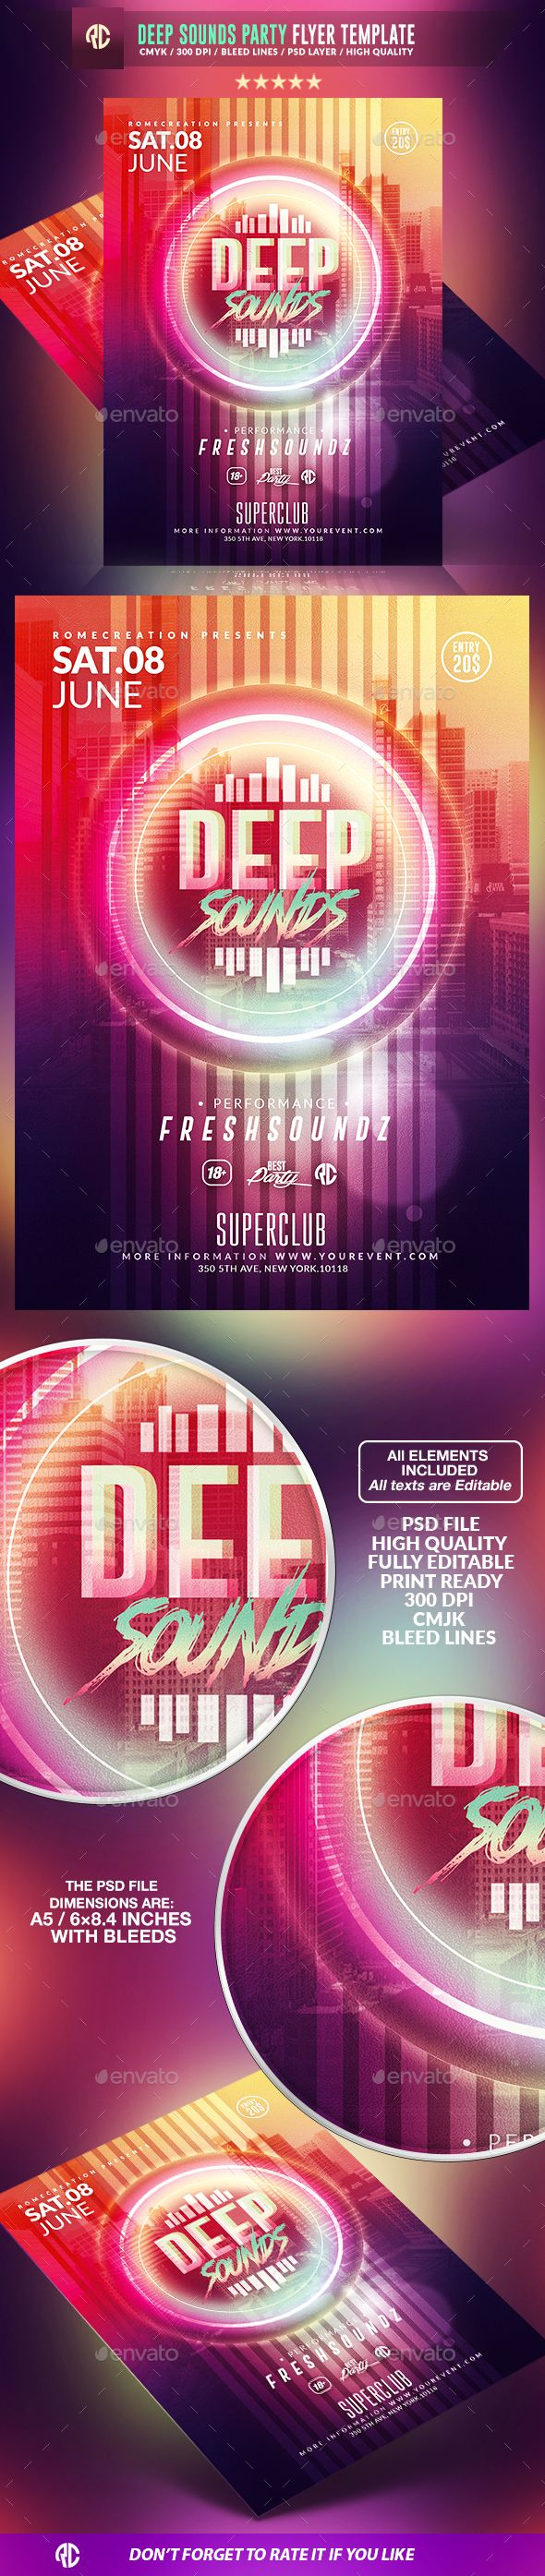 Deep Sounds Party | Psd Flyer Template available on #envatomarket  #templates #romecreation #minimal #deep #flyer #flyers #poster #fresh #party #geometry #event #glow #glowinthedark #sounds #psd #market #graphicriver